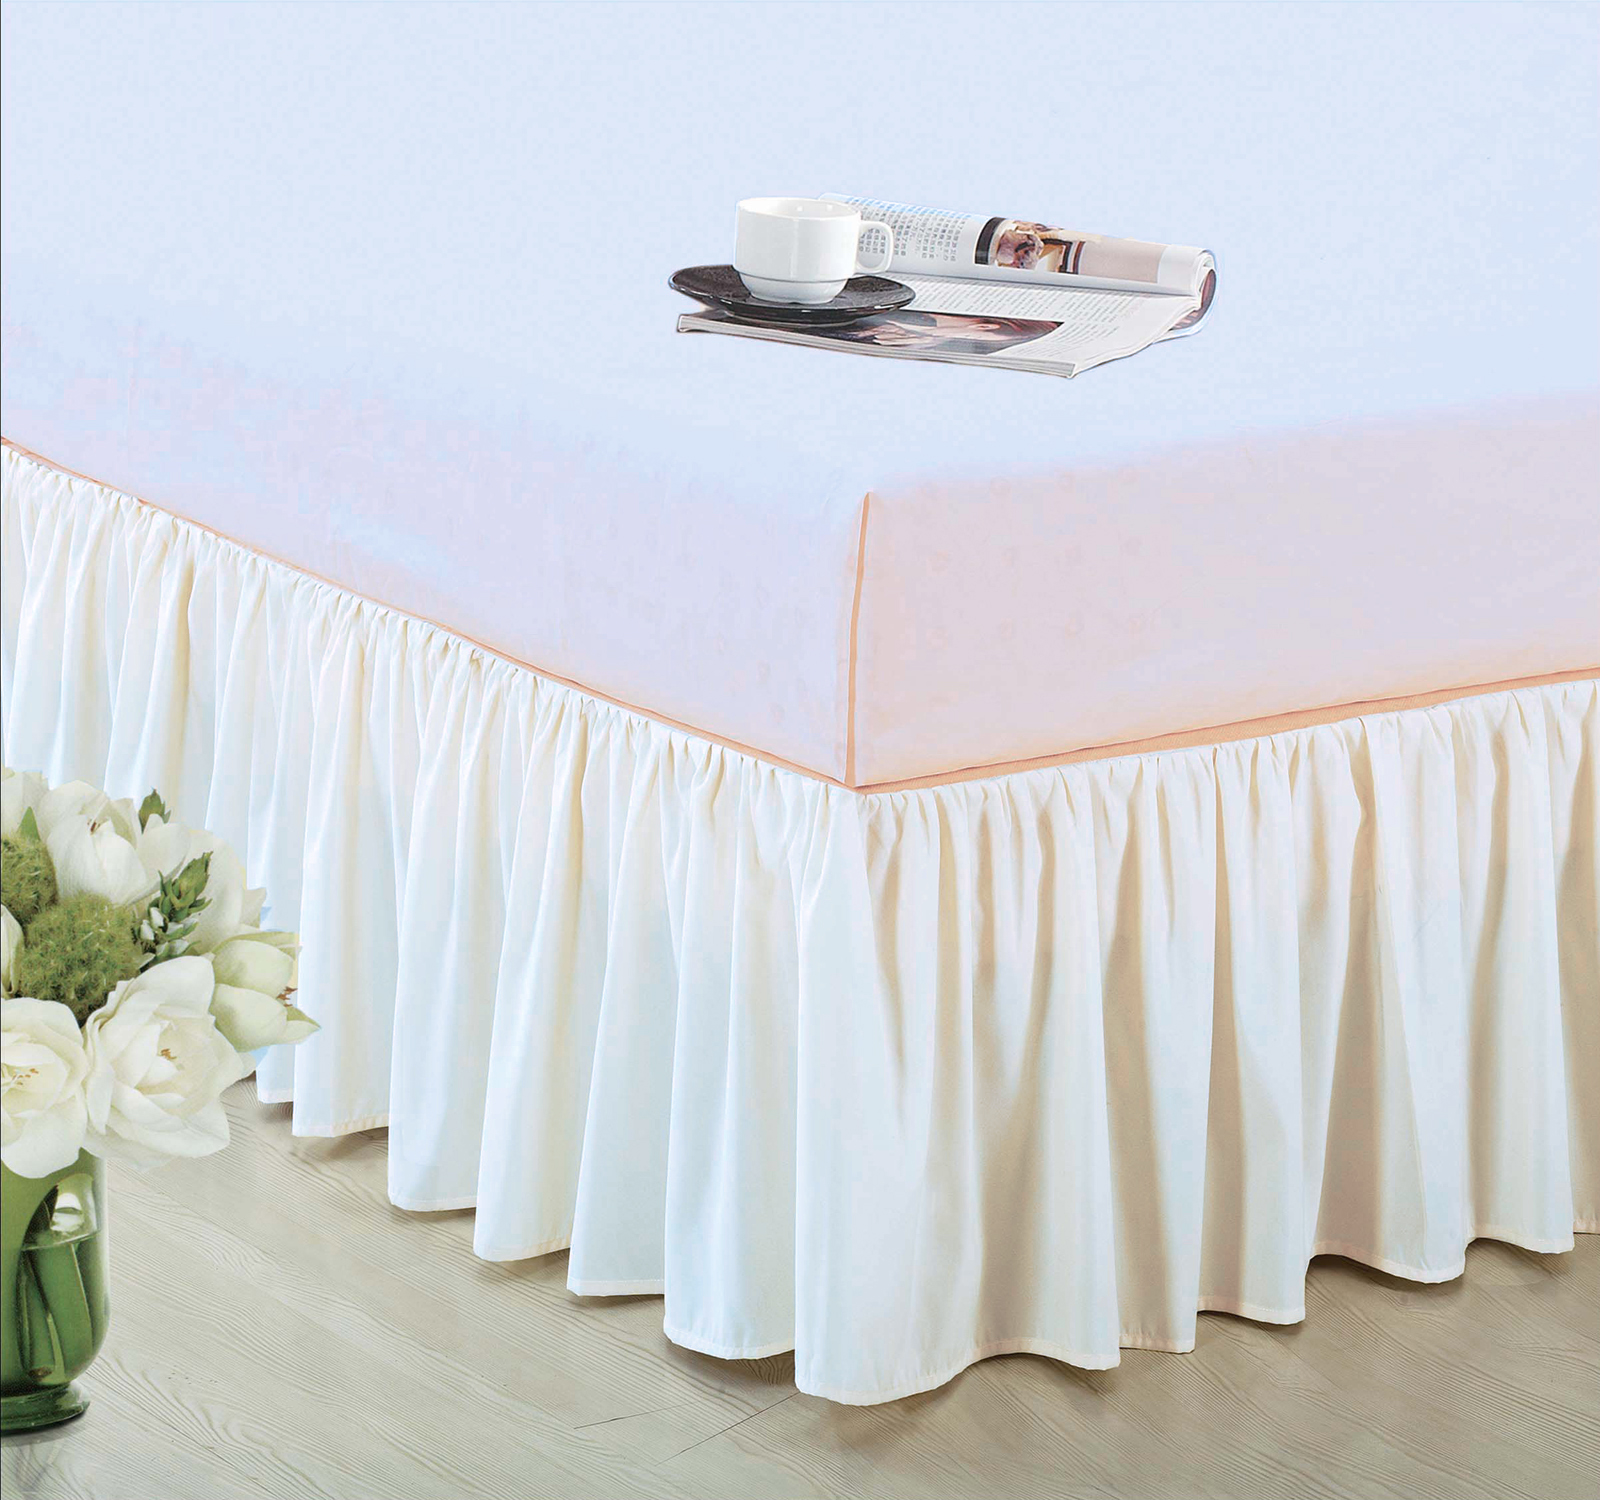 "14"" Drop Dust Ruffle Ruffled Bedskirt Box Spring Cover Machine Wash Ivory Twin by HG station"